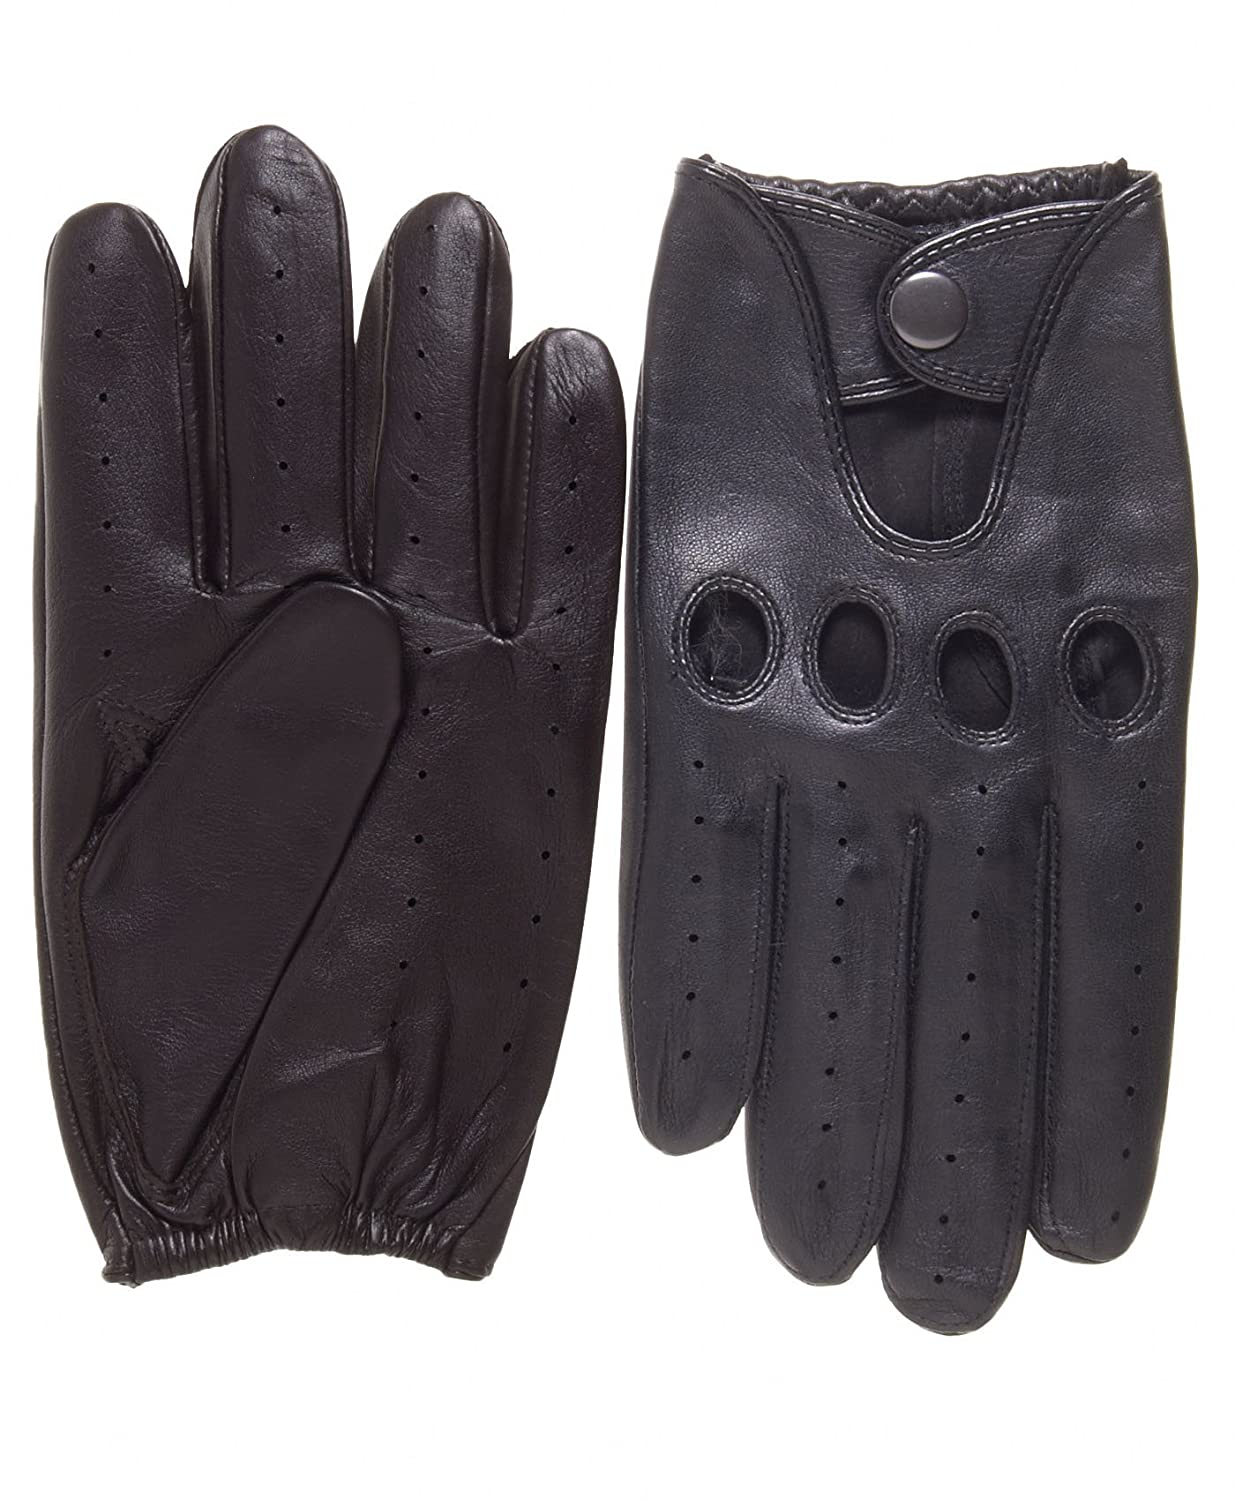 Driving gloves benefits - Pratt And Hart Traditional Leather Driving Gloves Size S Color Black At Amazon Men S Clothing Store Cold Weather Gloves